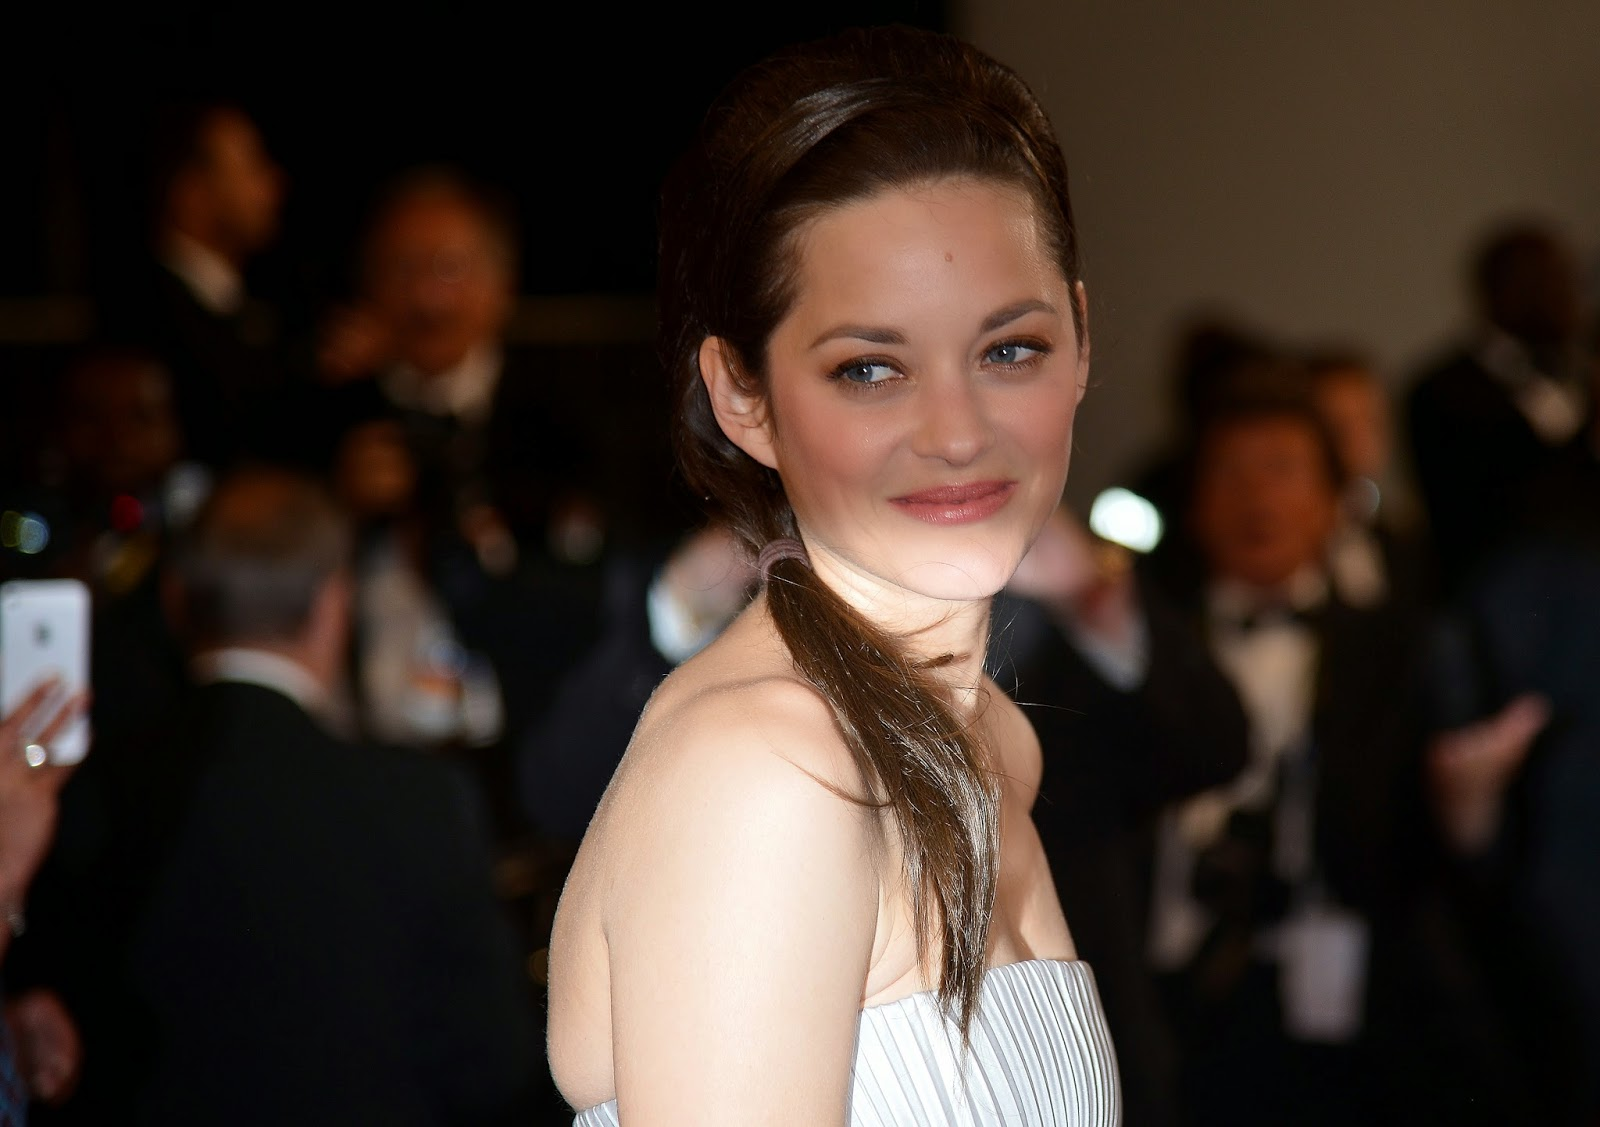 Cannes, Cannes Festival, Cannes Film Festival, Entertainment, Film, Film Festival, France, French Actress, Hollywood, Hollywood Actress, L'Homme qu'on Aimait Trop, Marion Cotillard, Marion Cotillard Photo, Showbiz,